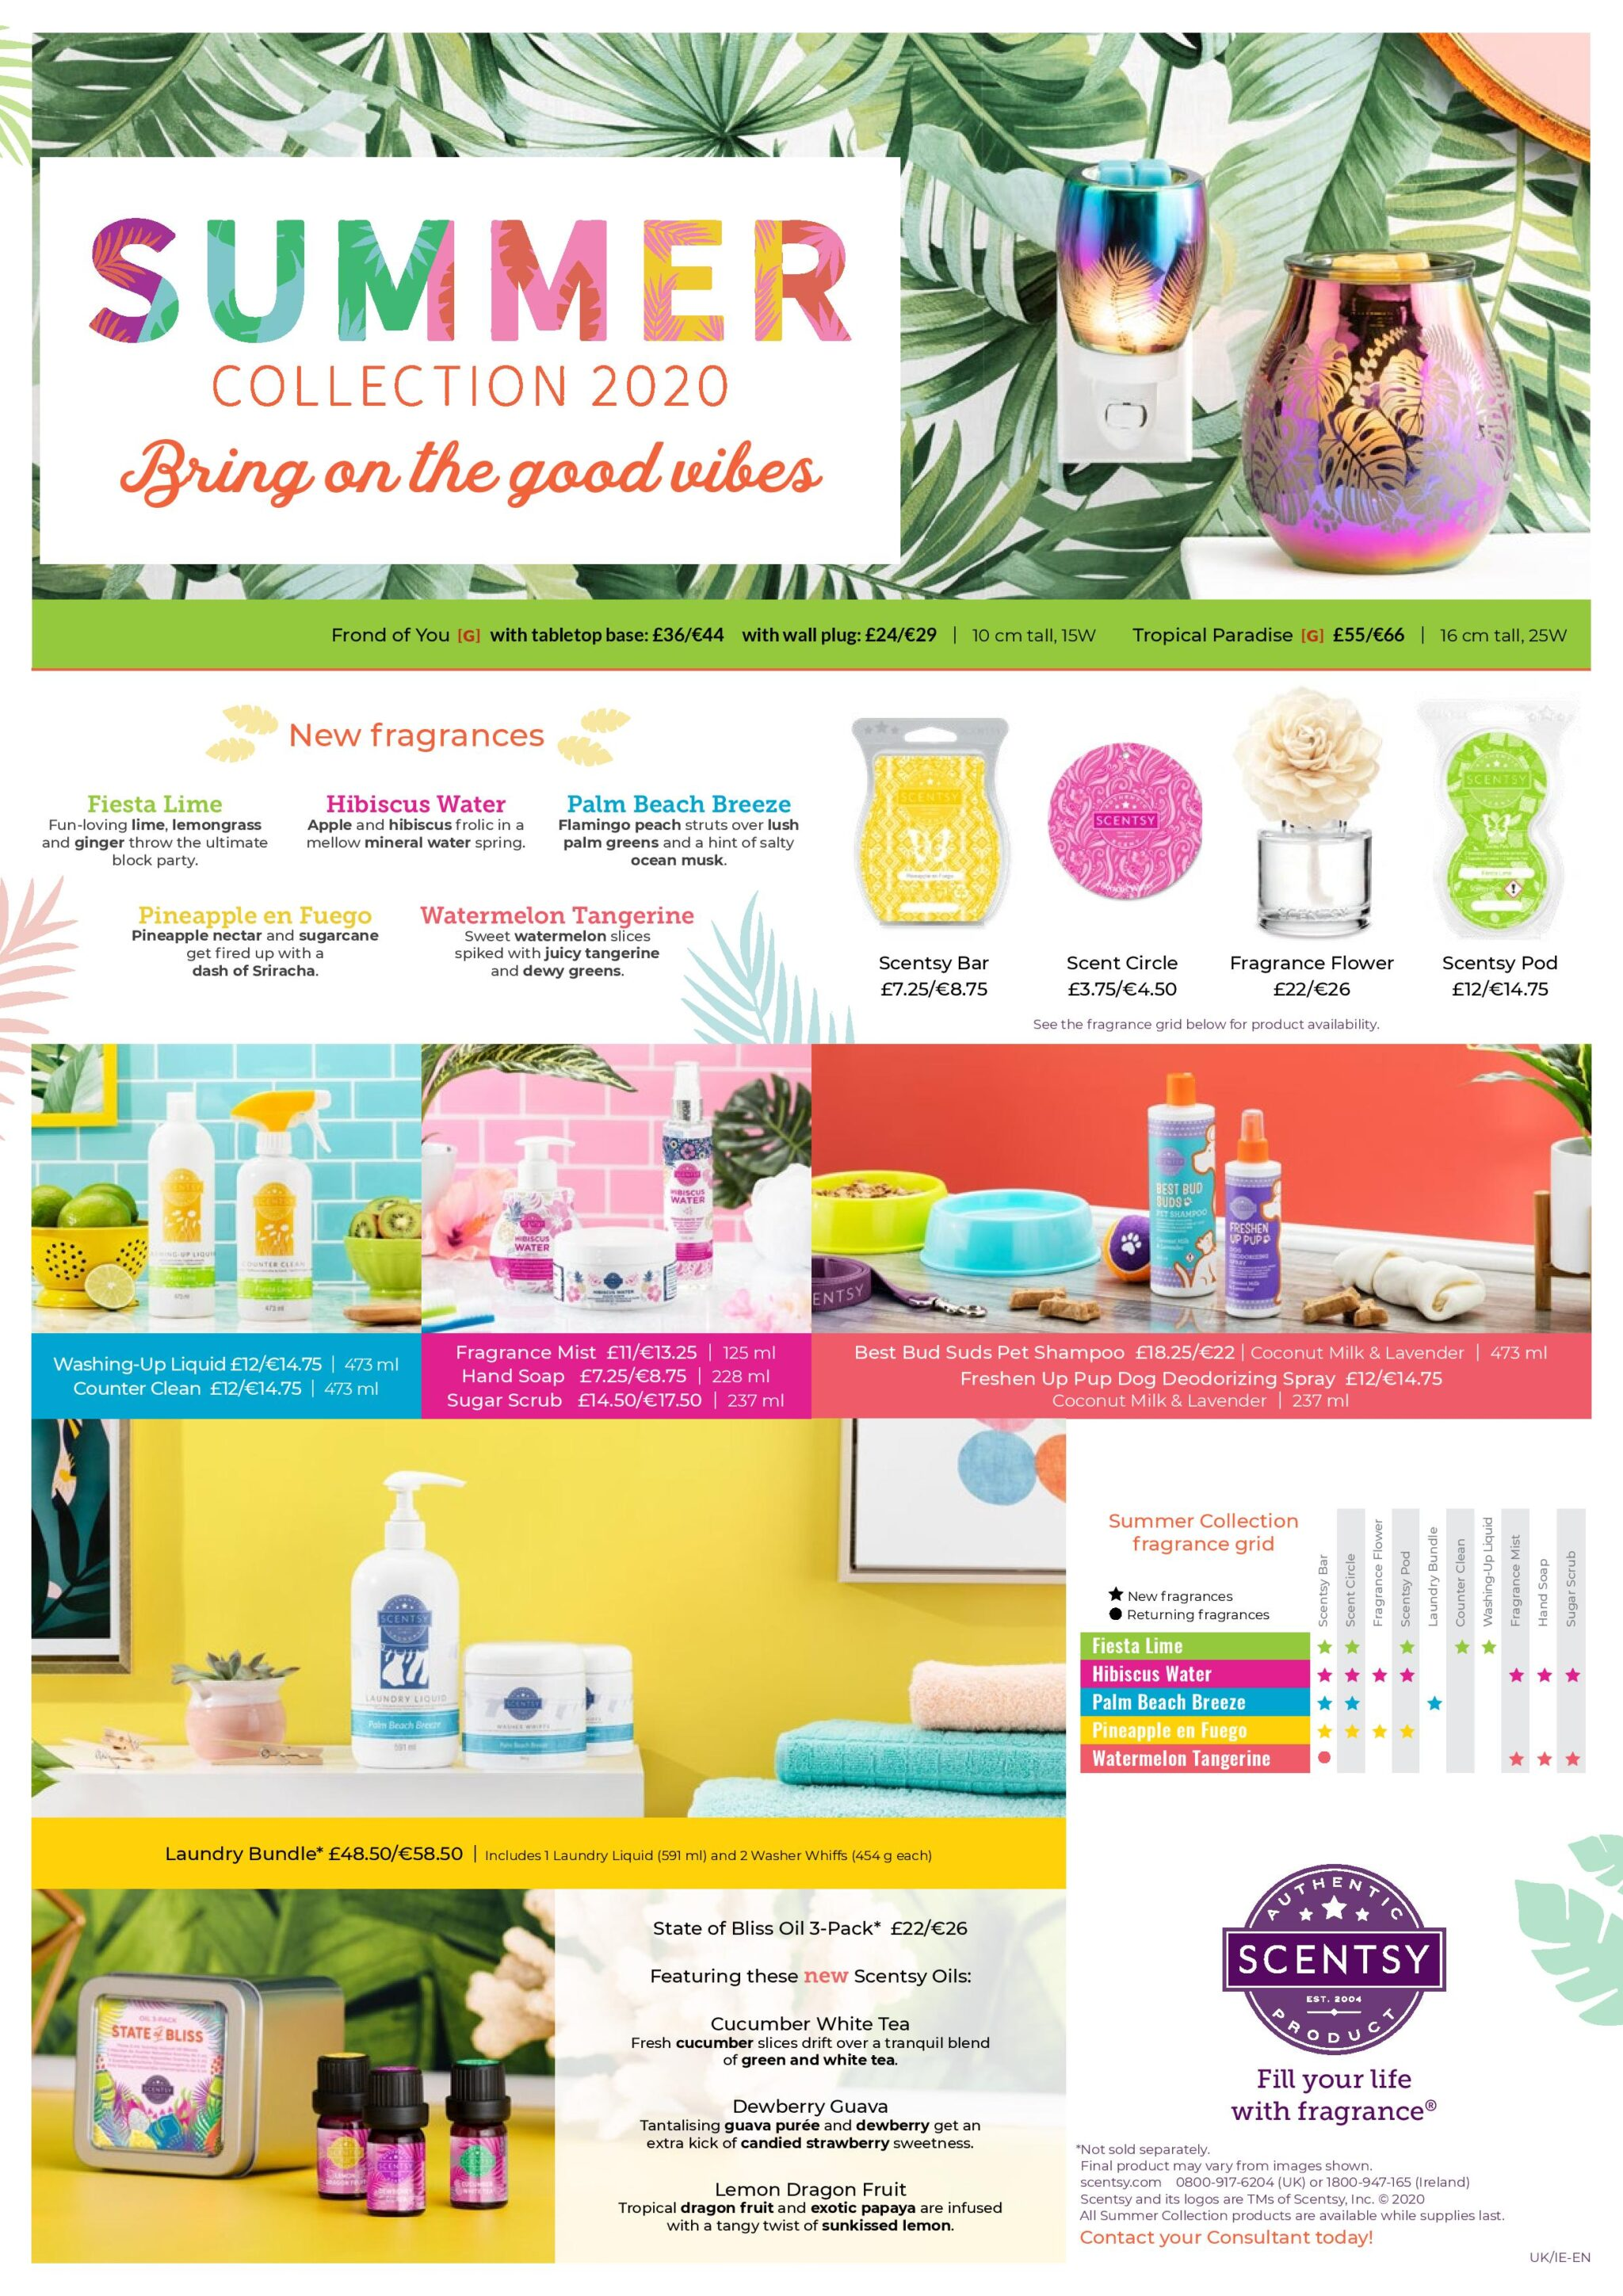 Scentsy Uk 2020 Summer Collection The Candle Boutique Scentsy Uk Consultant